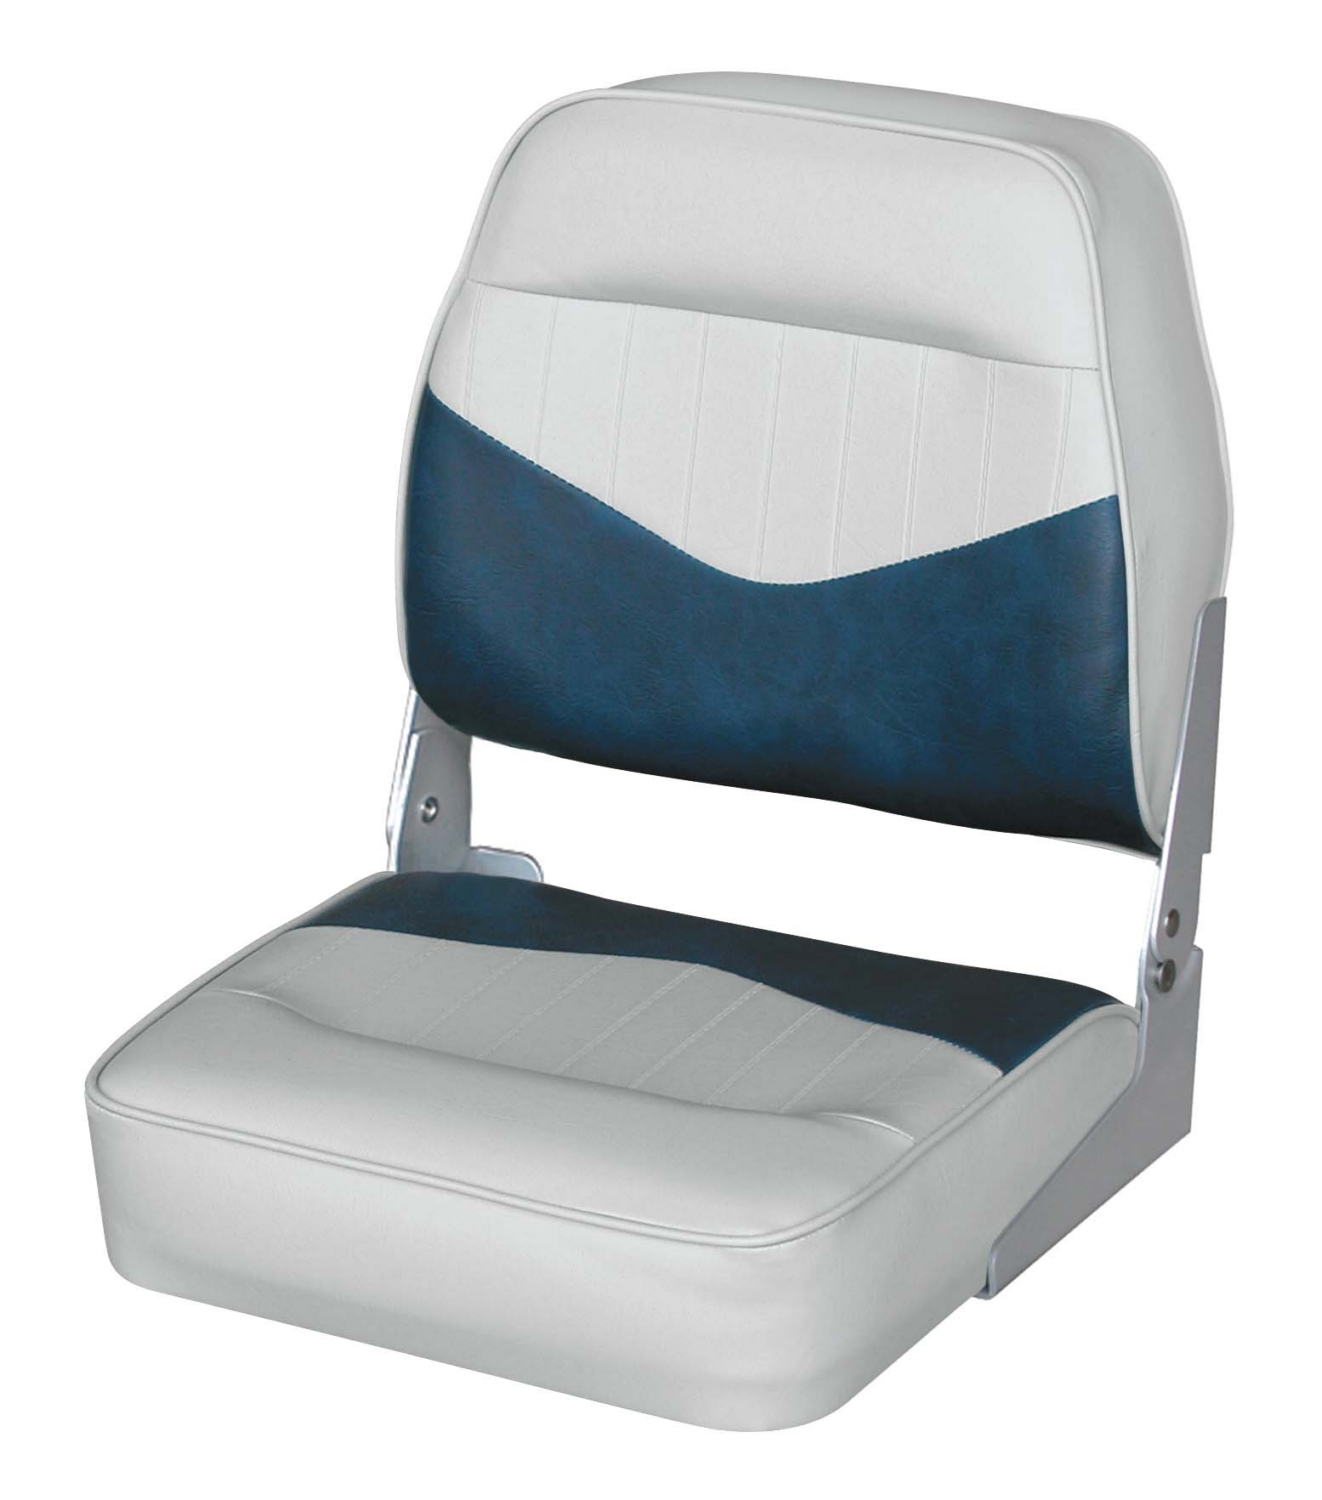 WISE Low Back Boat Seat | Kimpex Canada